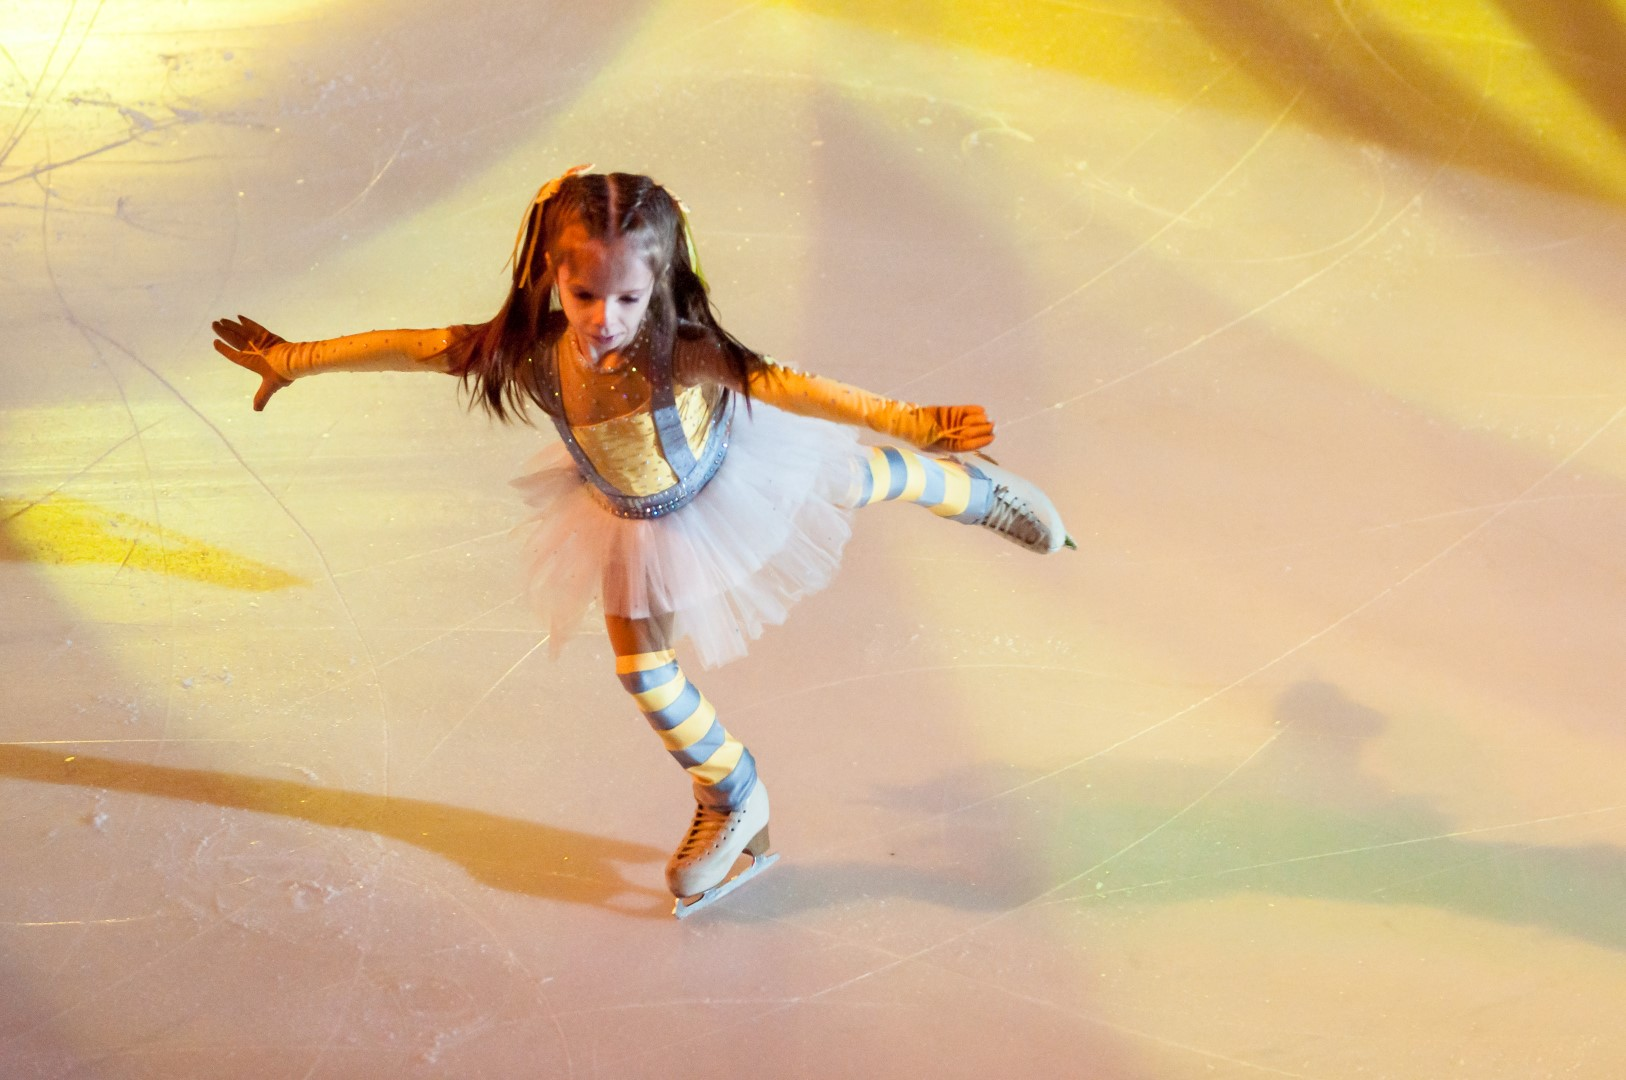 Orenburg, Russia - 26.03.2016: Children skater in competitions